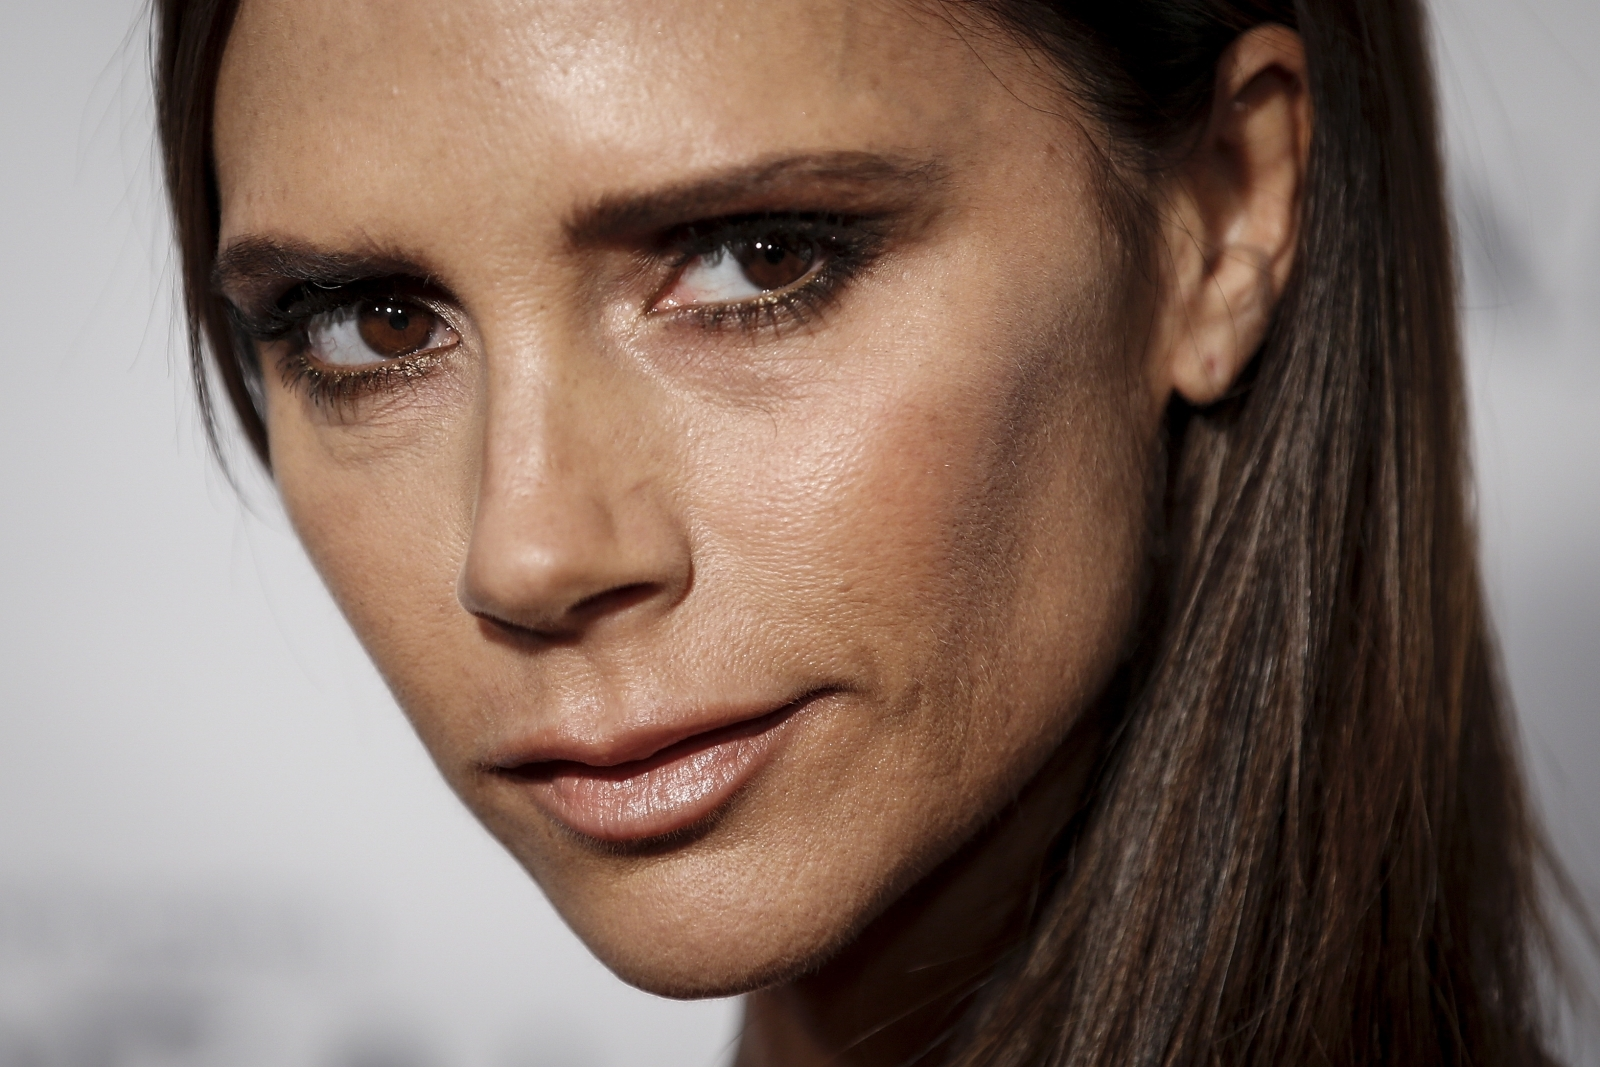 Victoria Beckham faces backlash for using ultra-thin model in new campaign